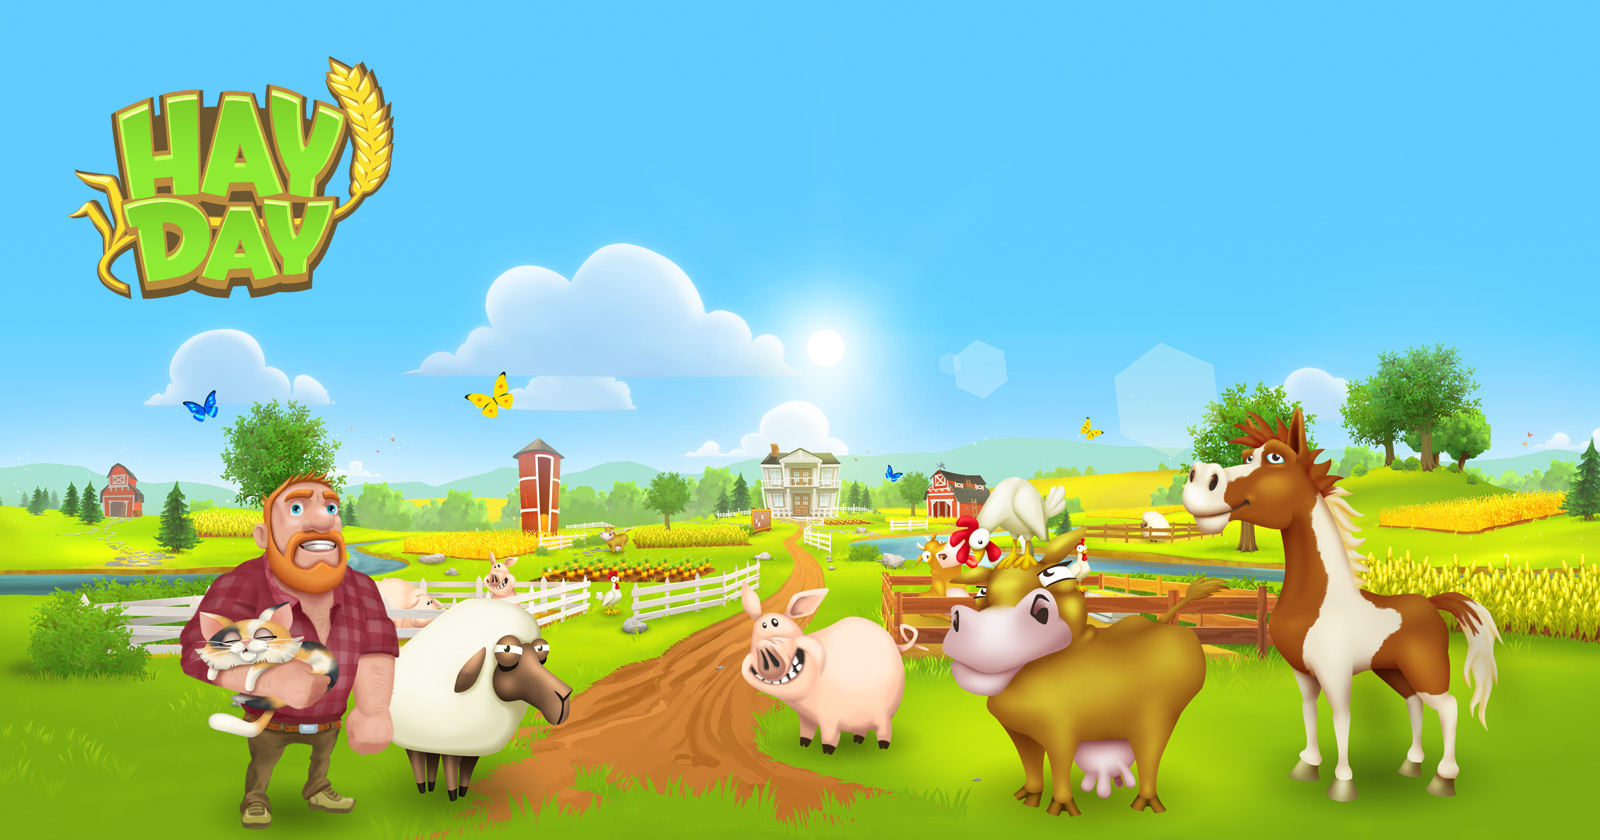 Hay Day × Supercell